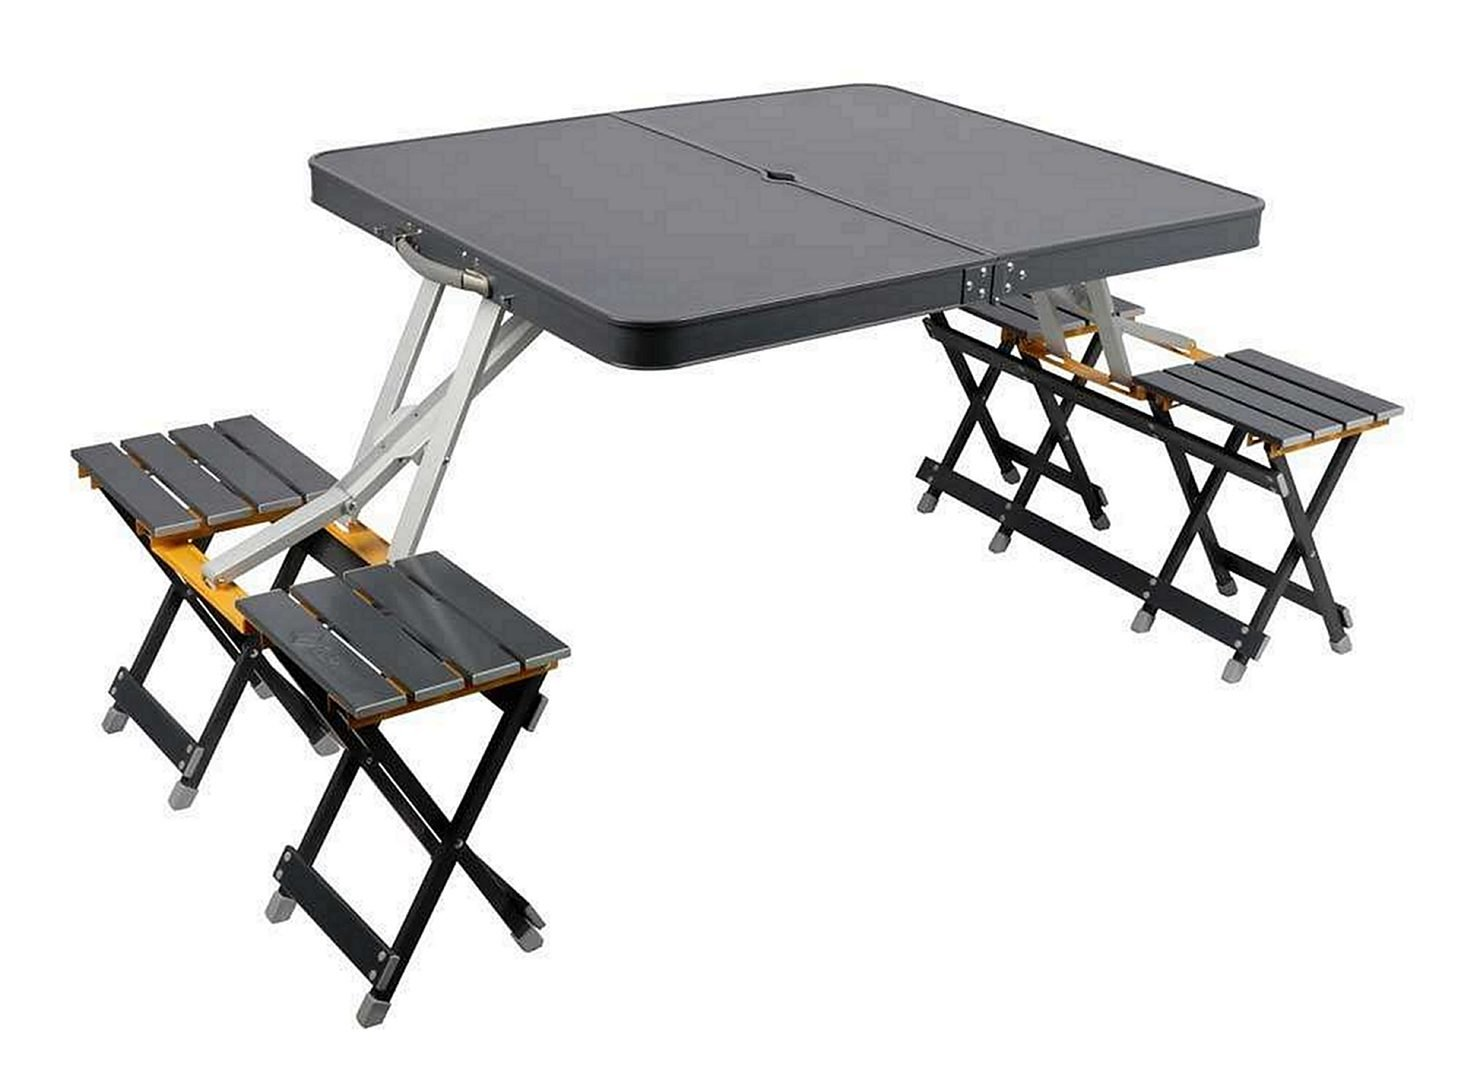 Camping table with Seats